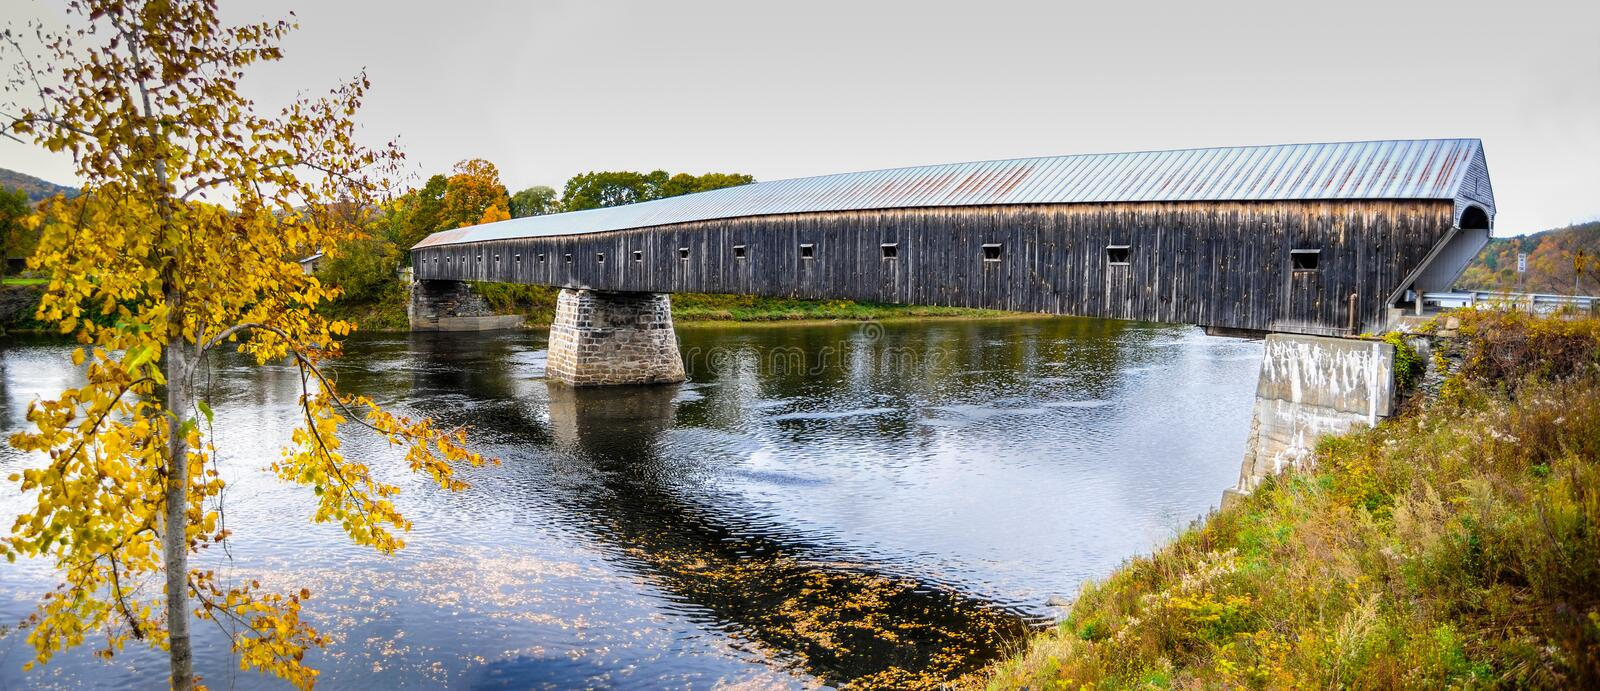 Corniska Windsor Covered Bridge royaltyfri foto